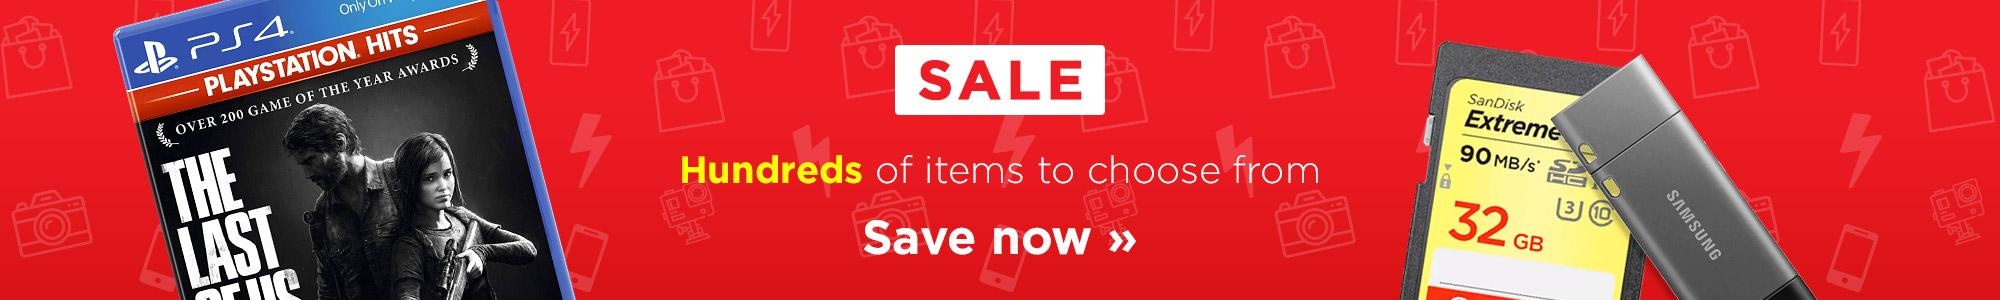 Shop the MyMemory Sale! Hundreds of items to choose from